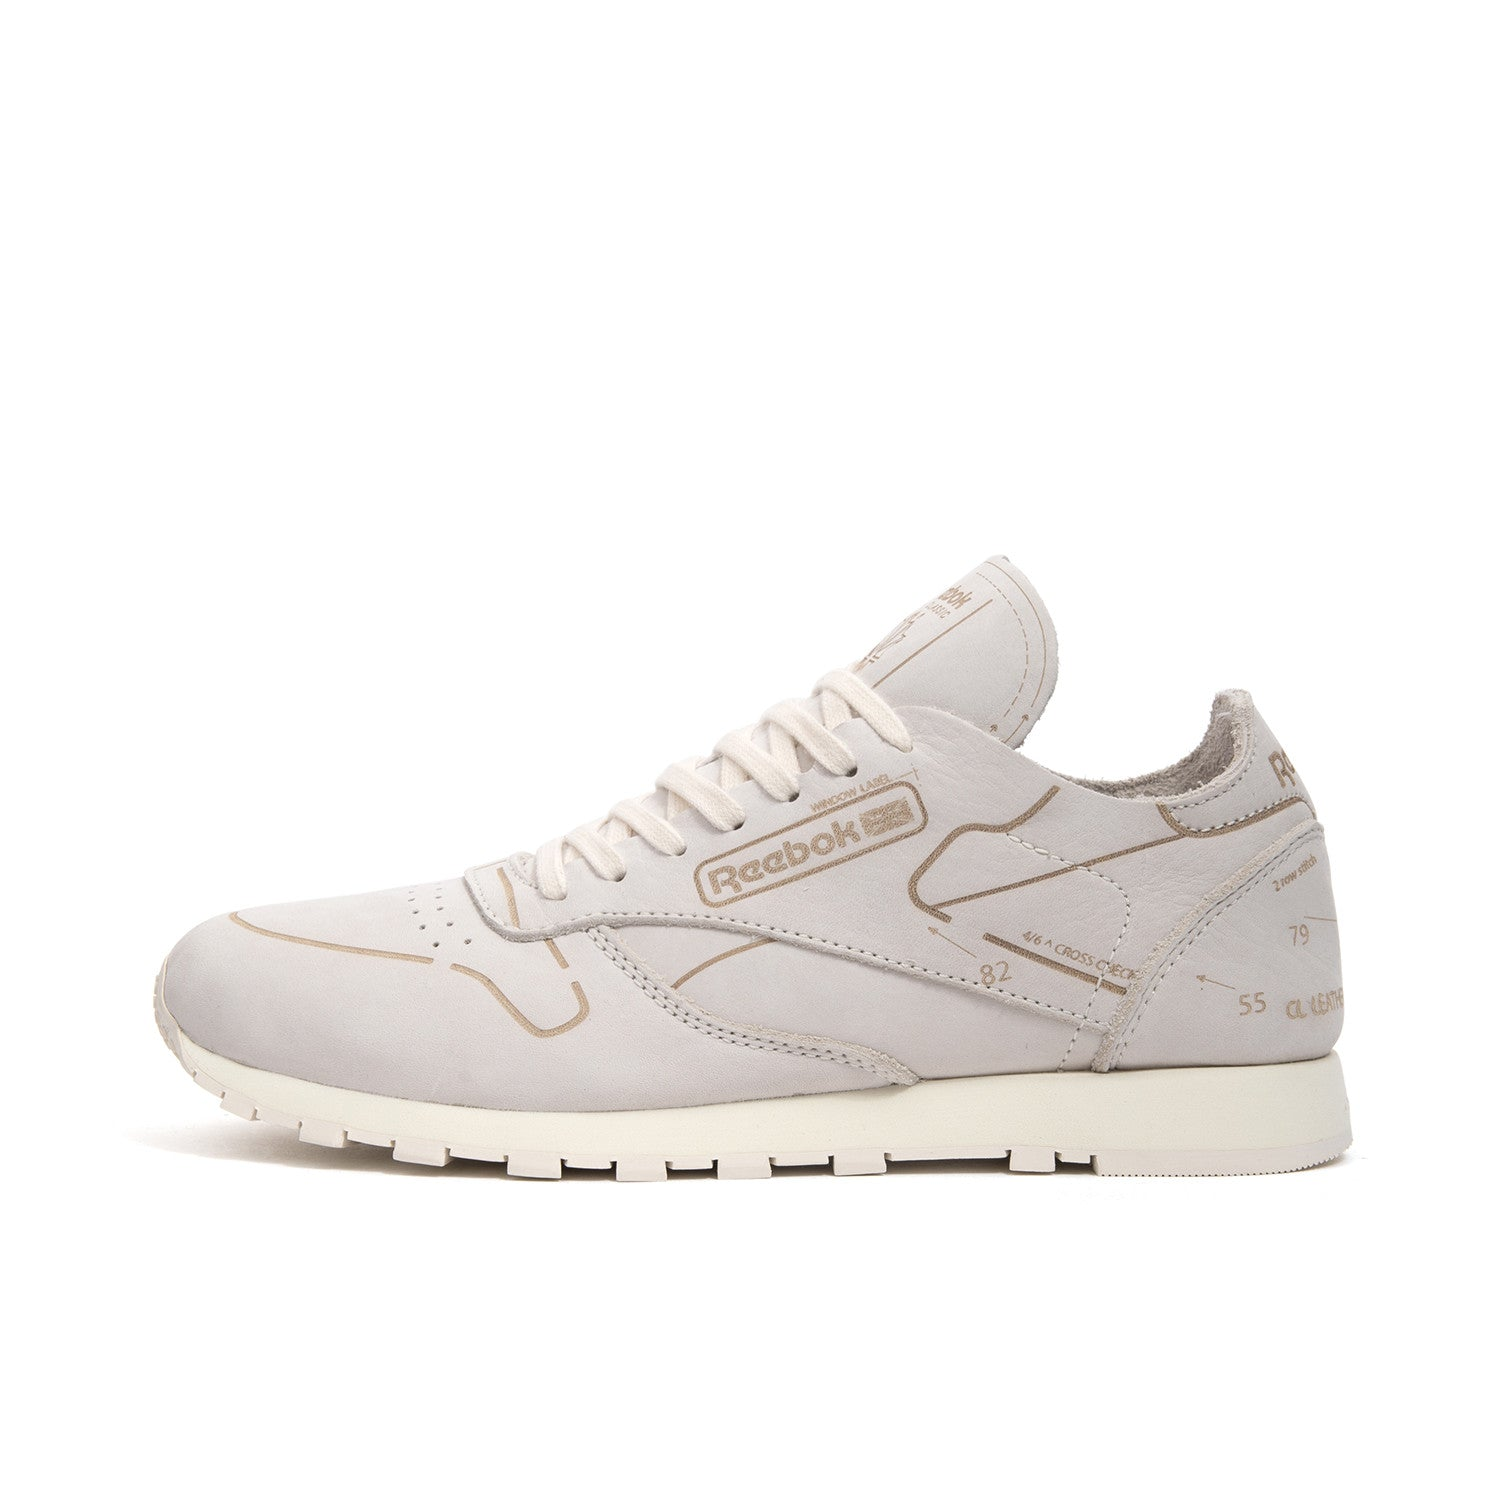 Reebok CL Leather HMG Classic White